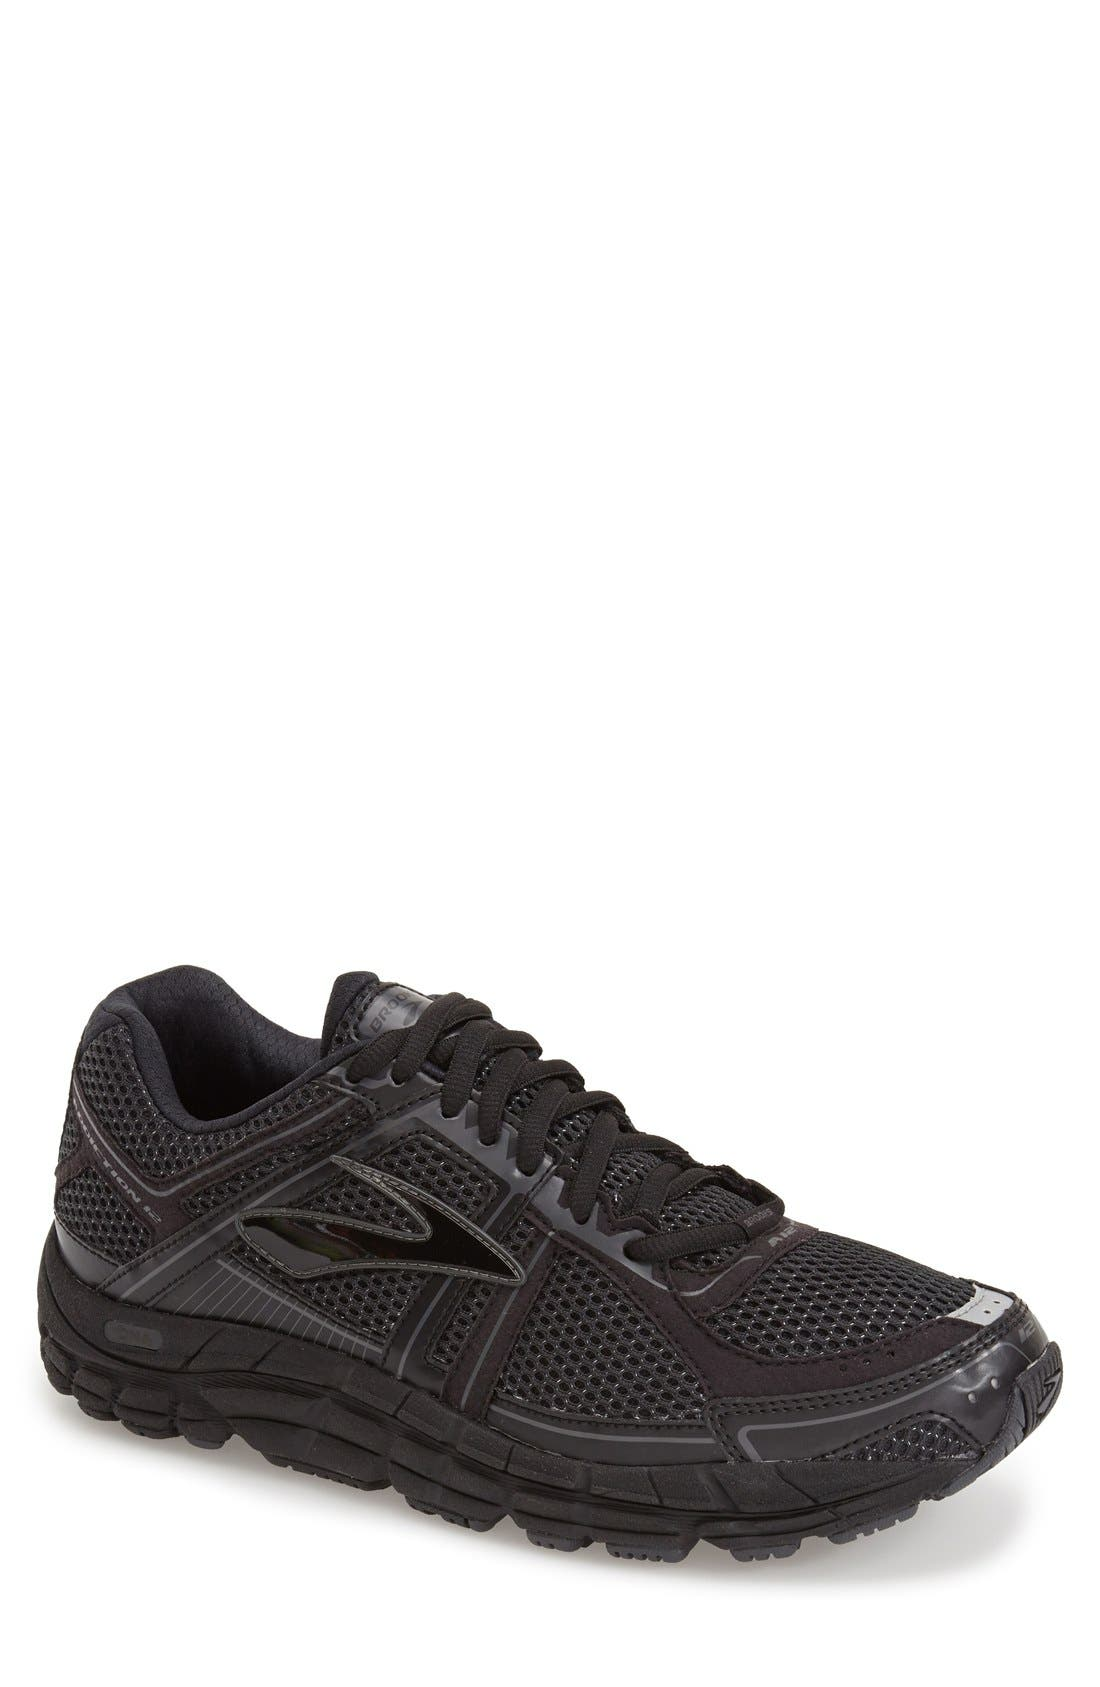 Alternate Image 1 Selected - Brooks 'Addiction 12' Running Shoe (Men)